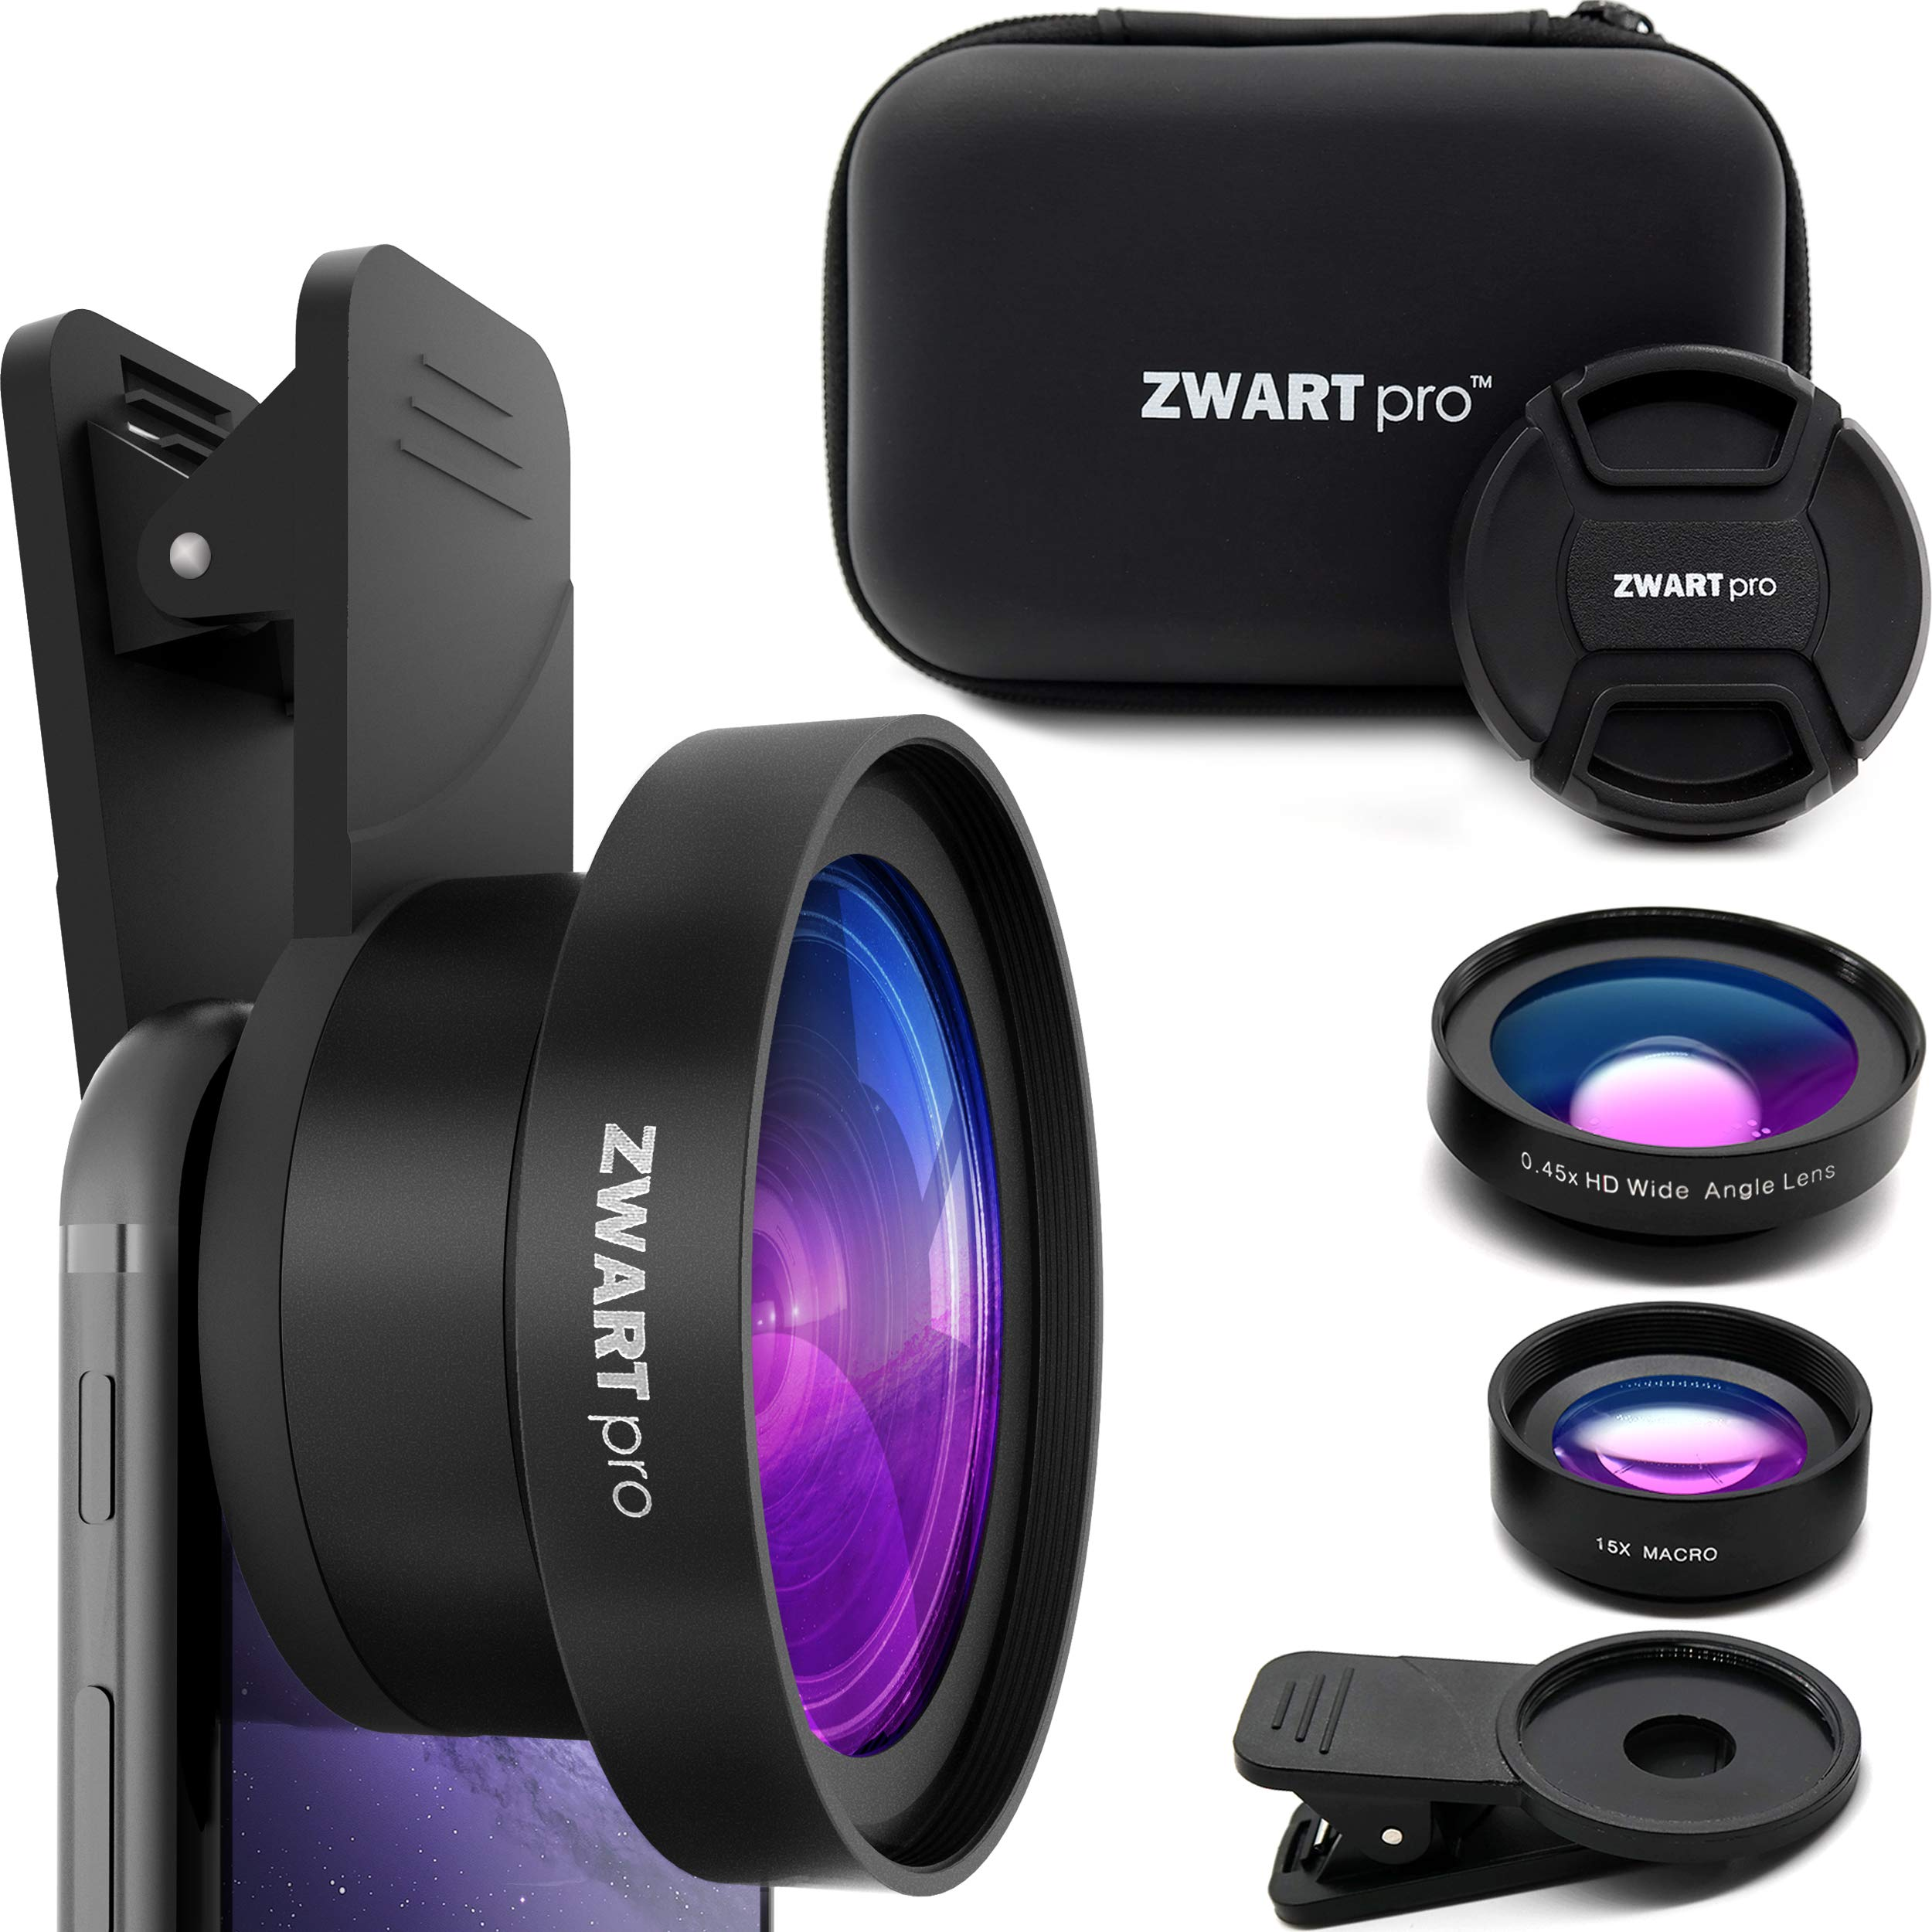 Cell Phone Lens Attachment | ZWARTpro 2 in 1 Wide Angle & Macro Camera Lens Kit for iPhone, iPad and Most Android Mobiles Phones & Tablets + Protective Case (Bigeye 53mm)